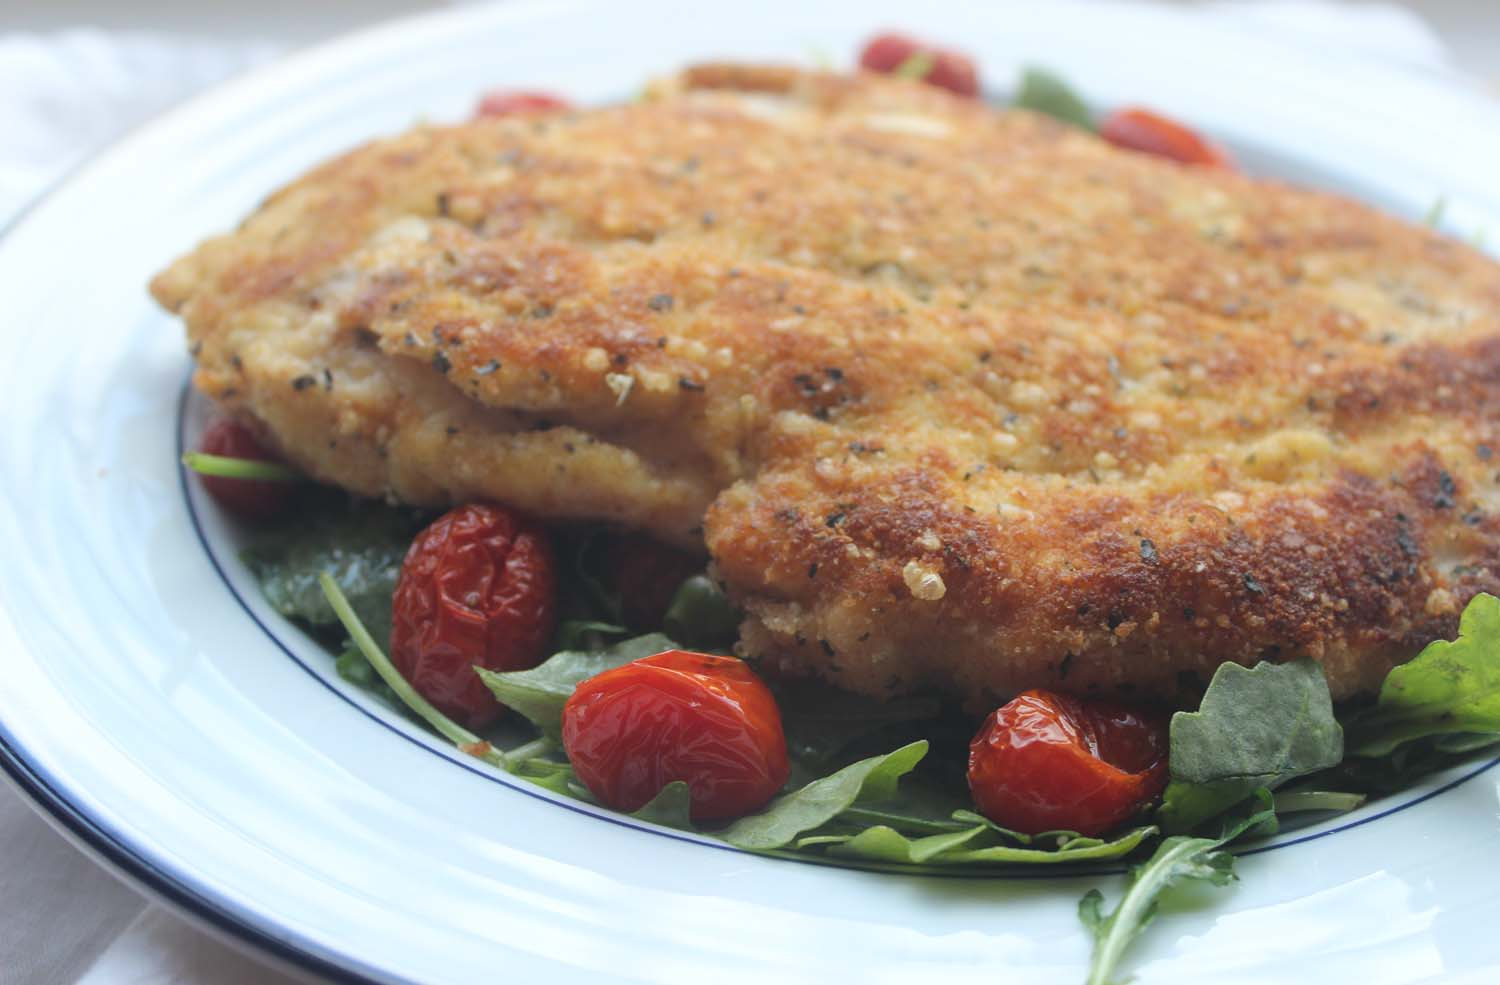 Parmesan Chicken with Arugula and Roasted Tomatoes   Image: Laura Messersmith